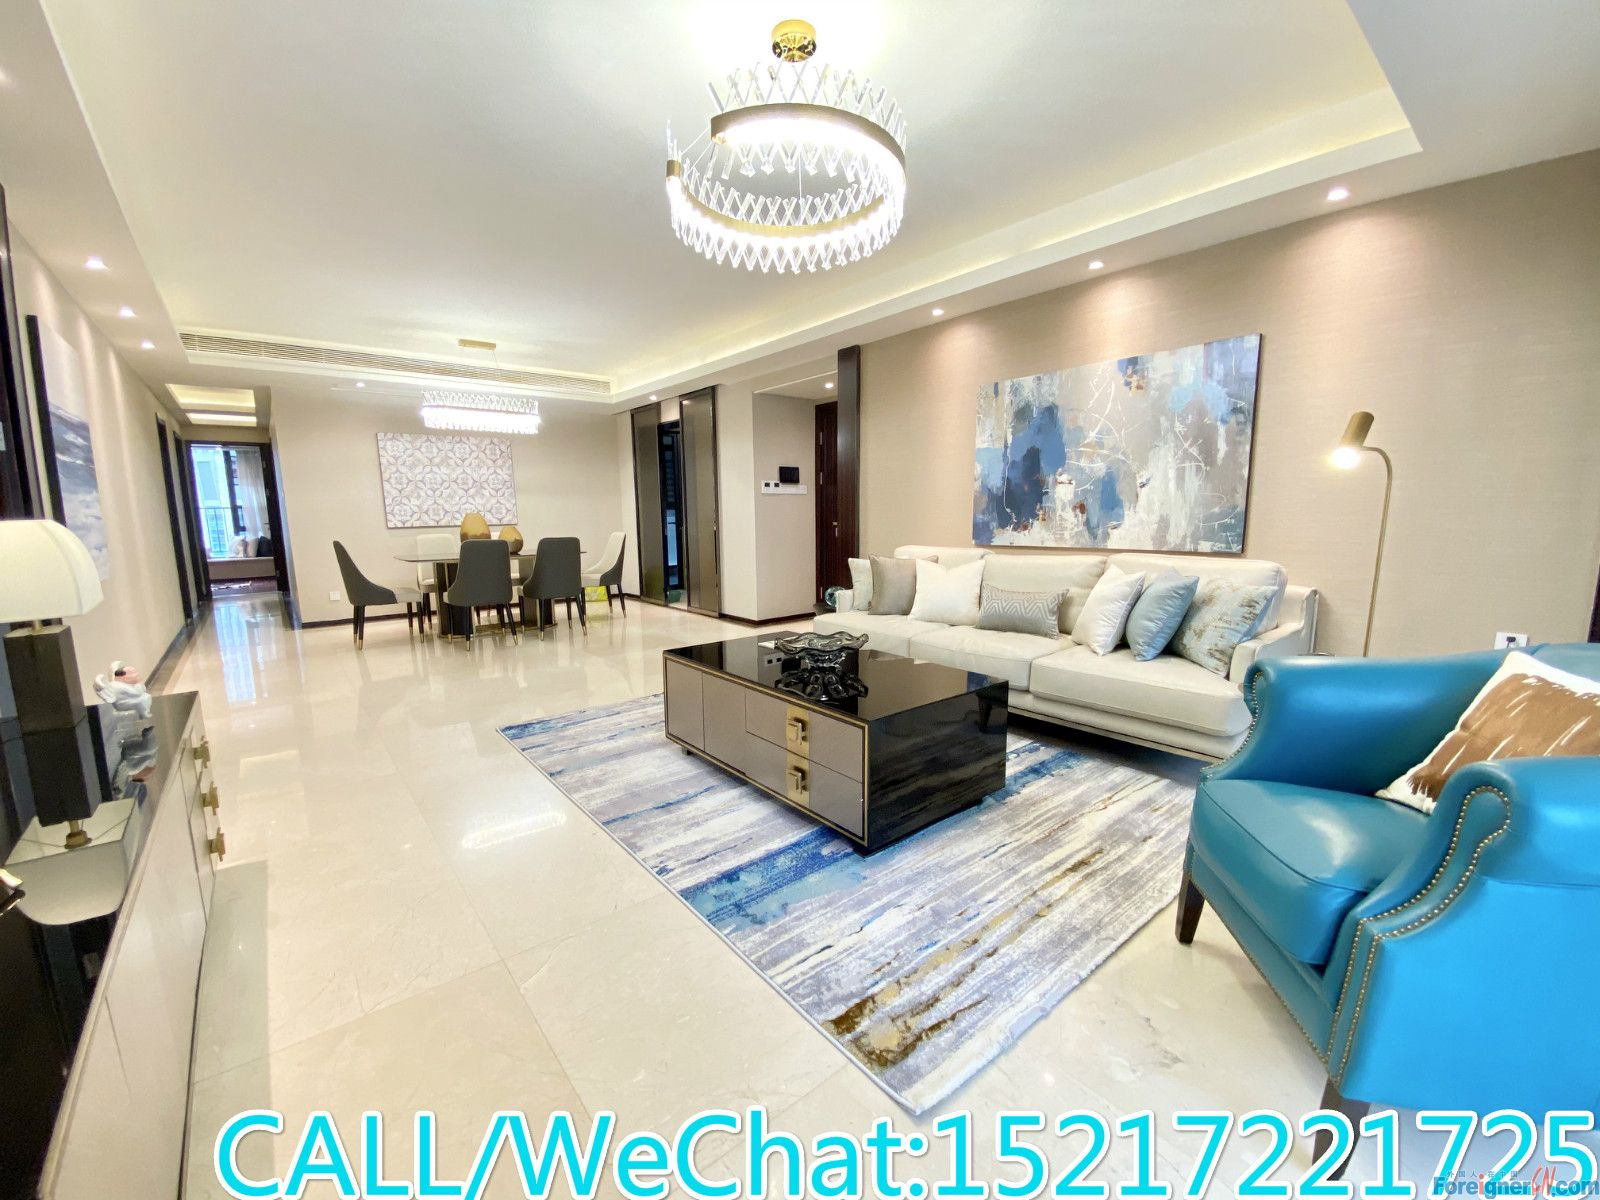 JIA YU MANSION-Brand New 4brs,large living room,high quality decoration,good condition,CBD AREA.